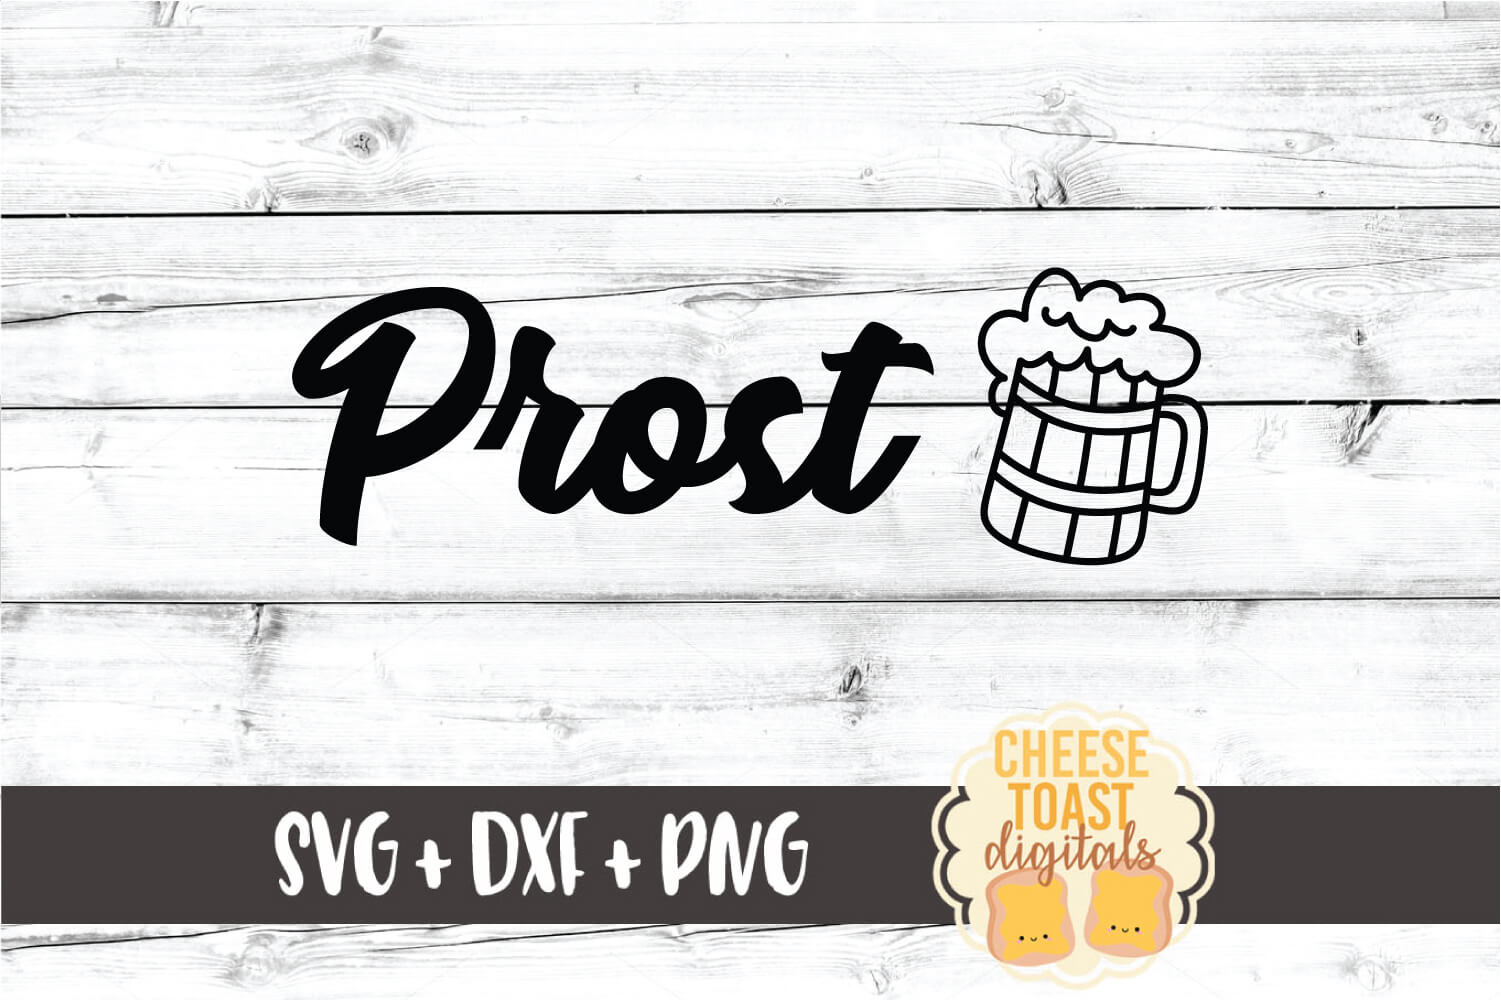 Prost - Oktoberfest SVG PNG DXF Cut File example image 2